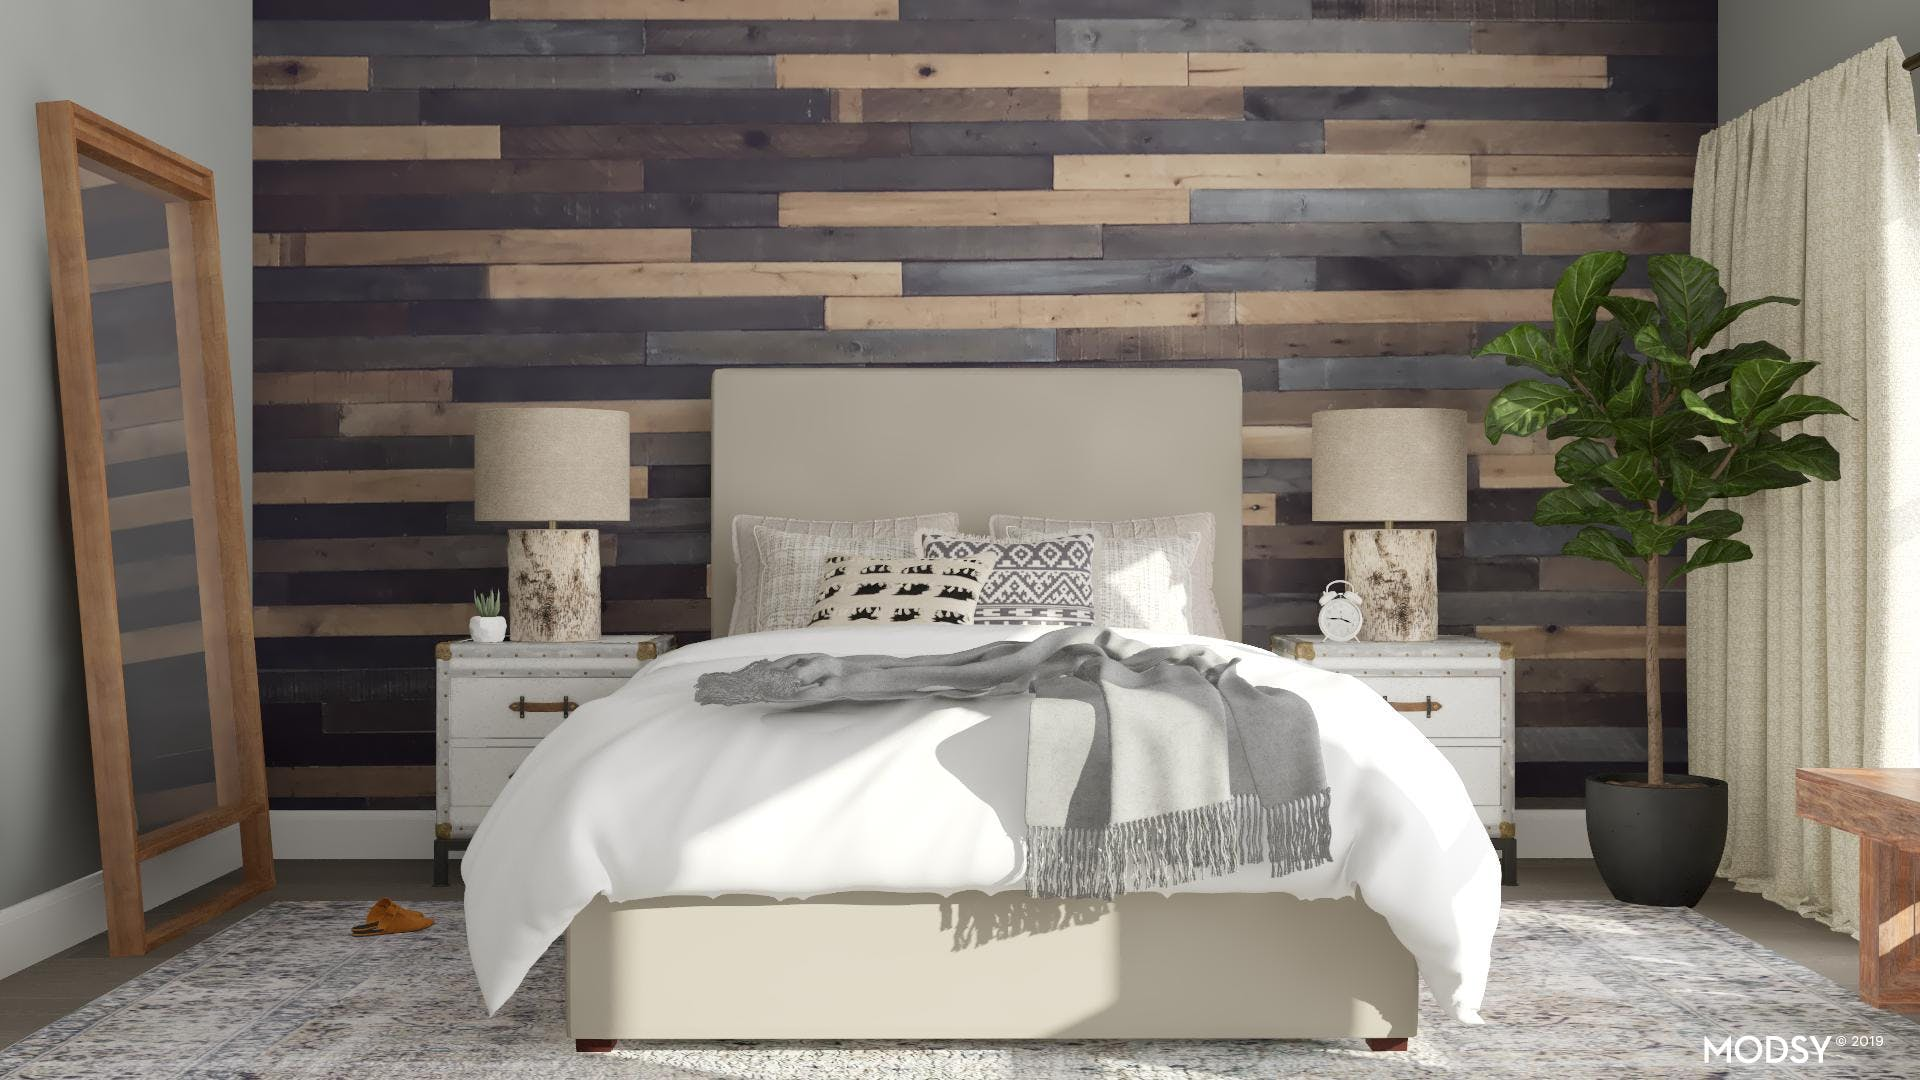 A Rustic Bedroom With Soothing Neutrals